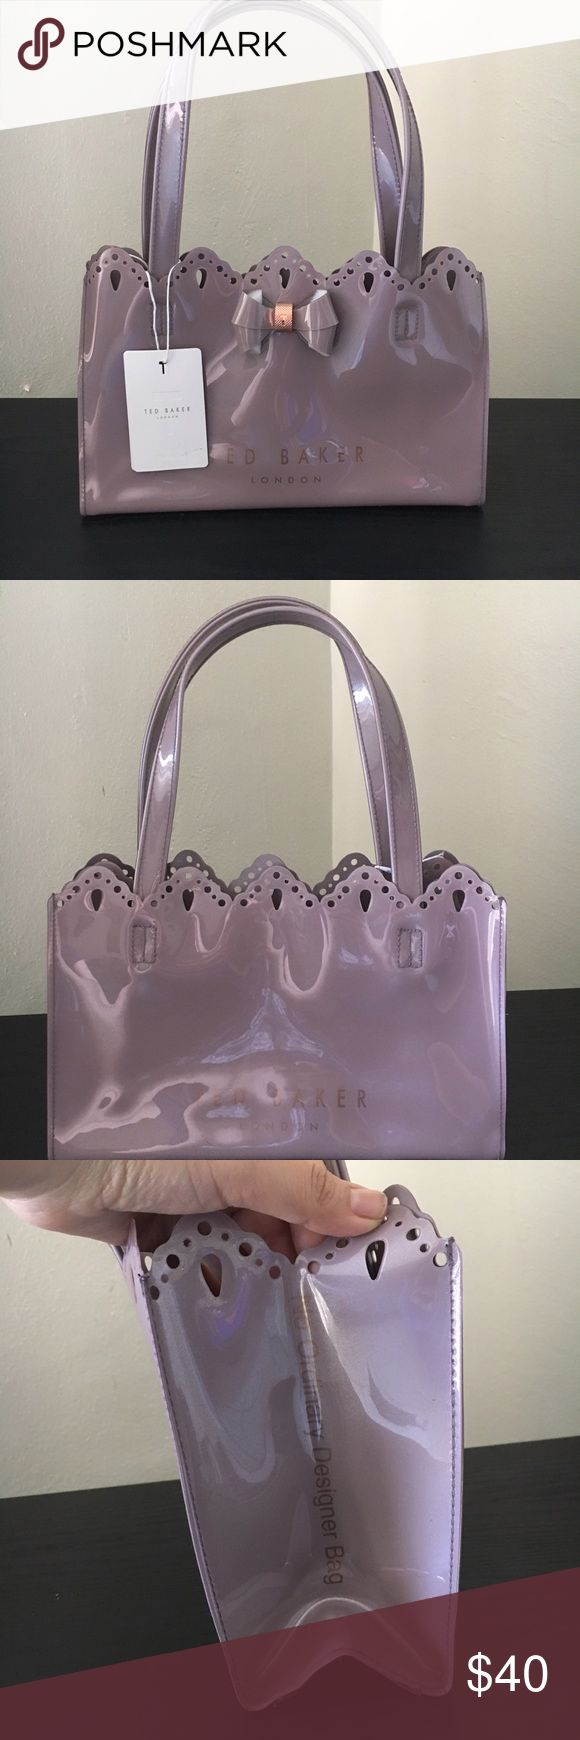 🎀 Ted Baker scallop micro bow item tote 🎀 Authentic Ted Baker tote bag, rose gold detail. 100% polyvinyl chloride. Ted Baker London Bags Totes